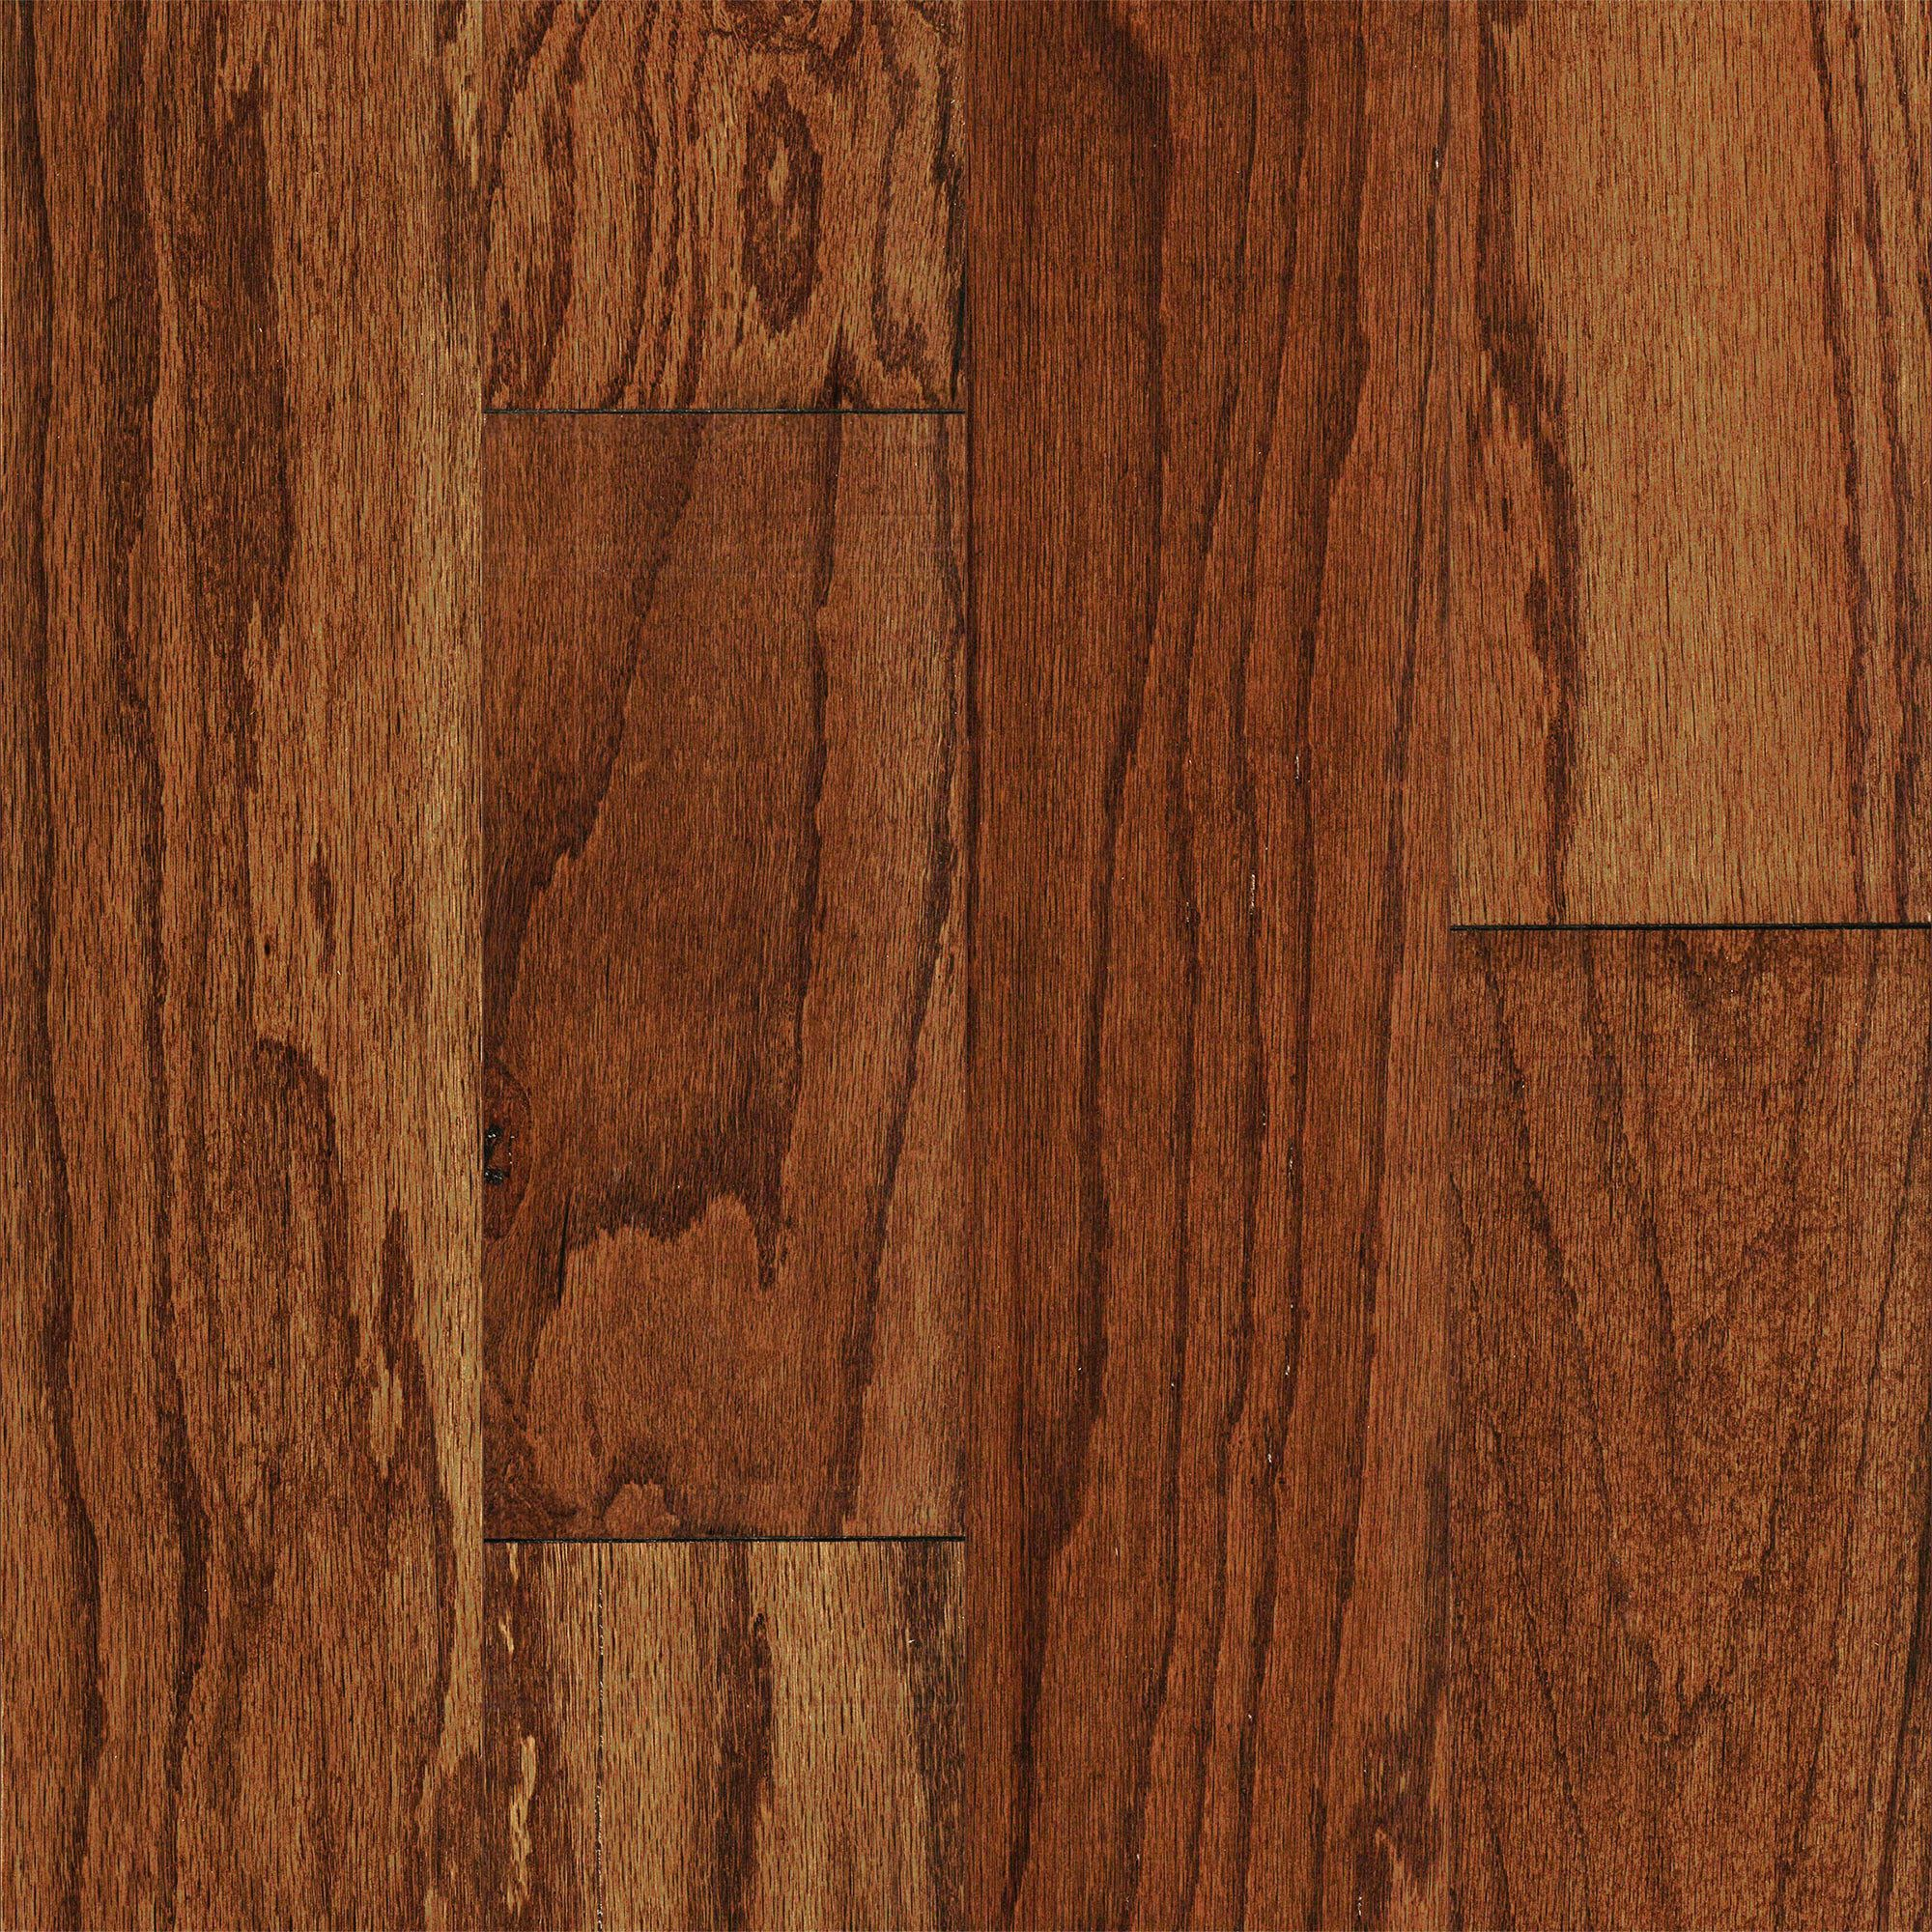 Mohawk 1 2 Thick Oak Saddle 5 1 4 Click Together Engineered Hardwood Flooring Engineered Hardwood Flooring Hardwood Floors Engineered Hardwood